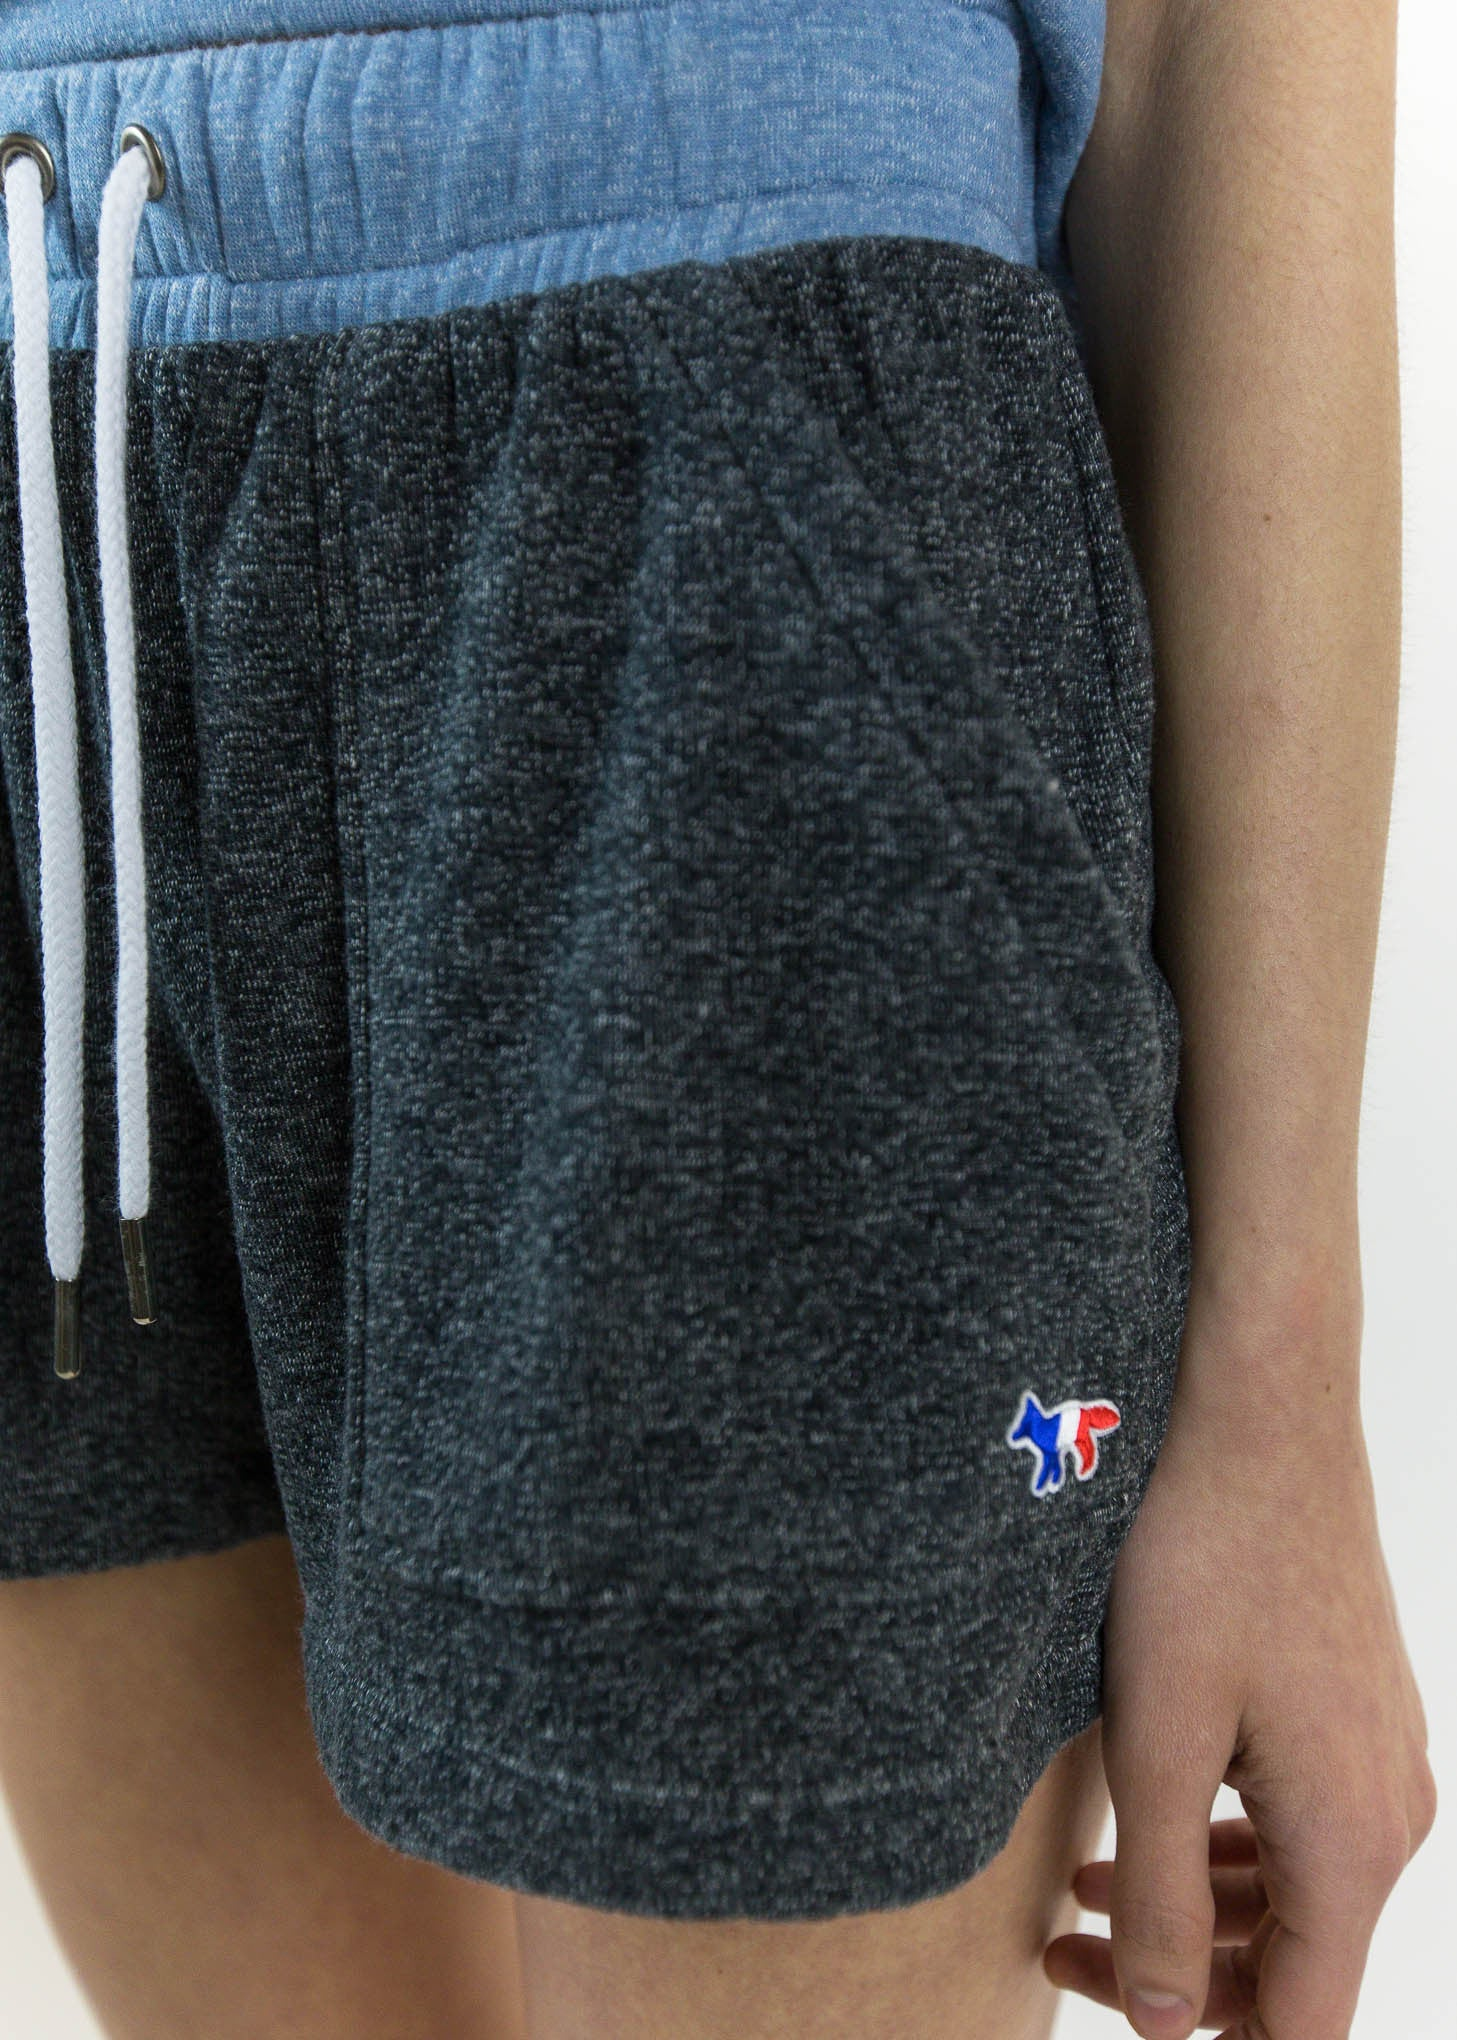 Japanese Jog Shorts